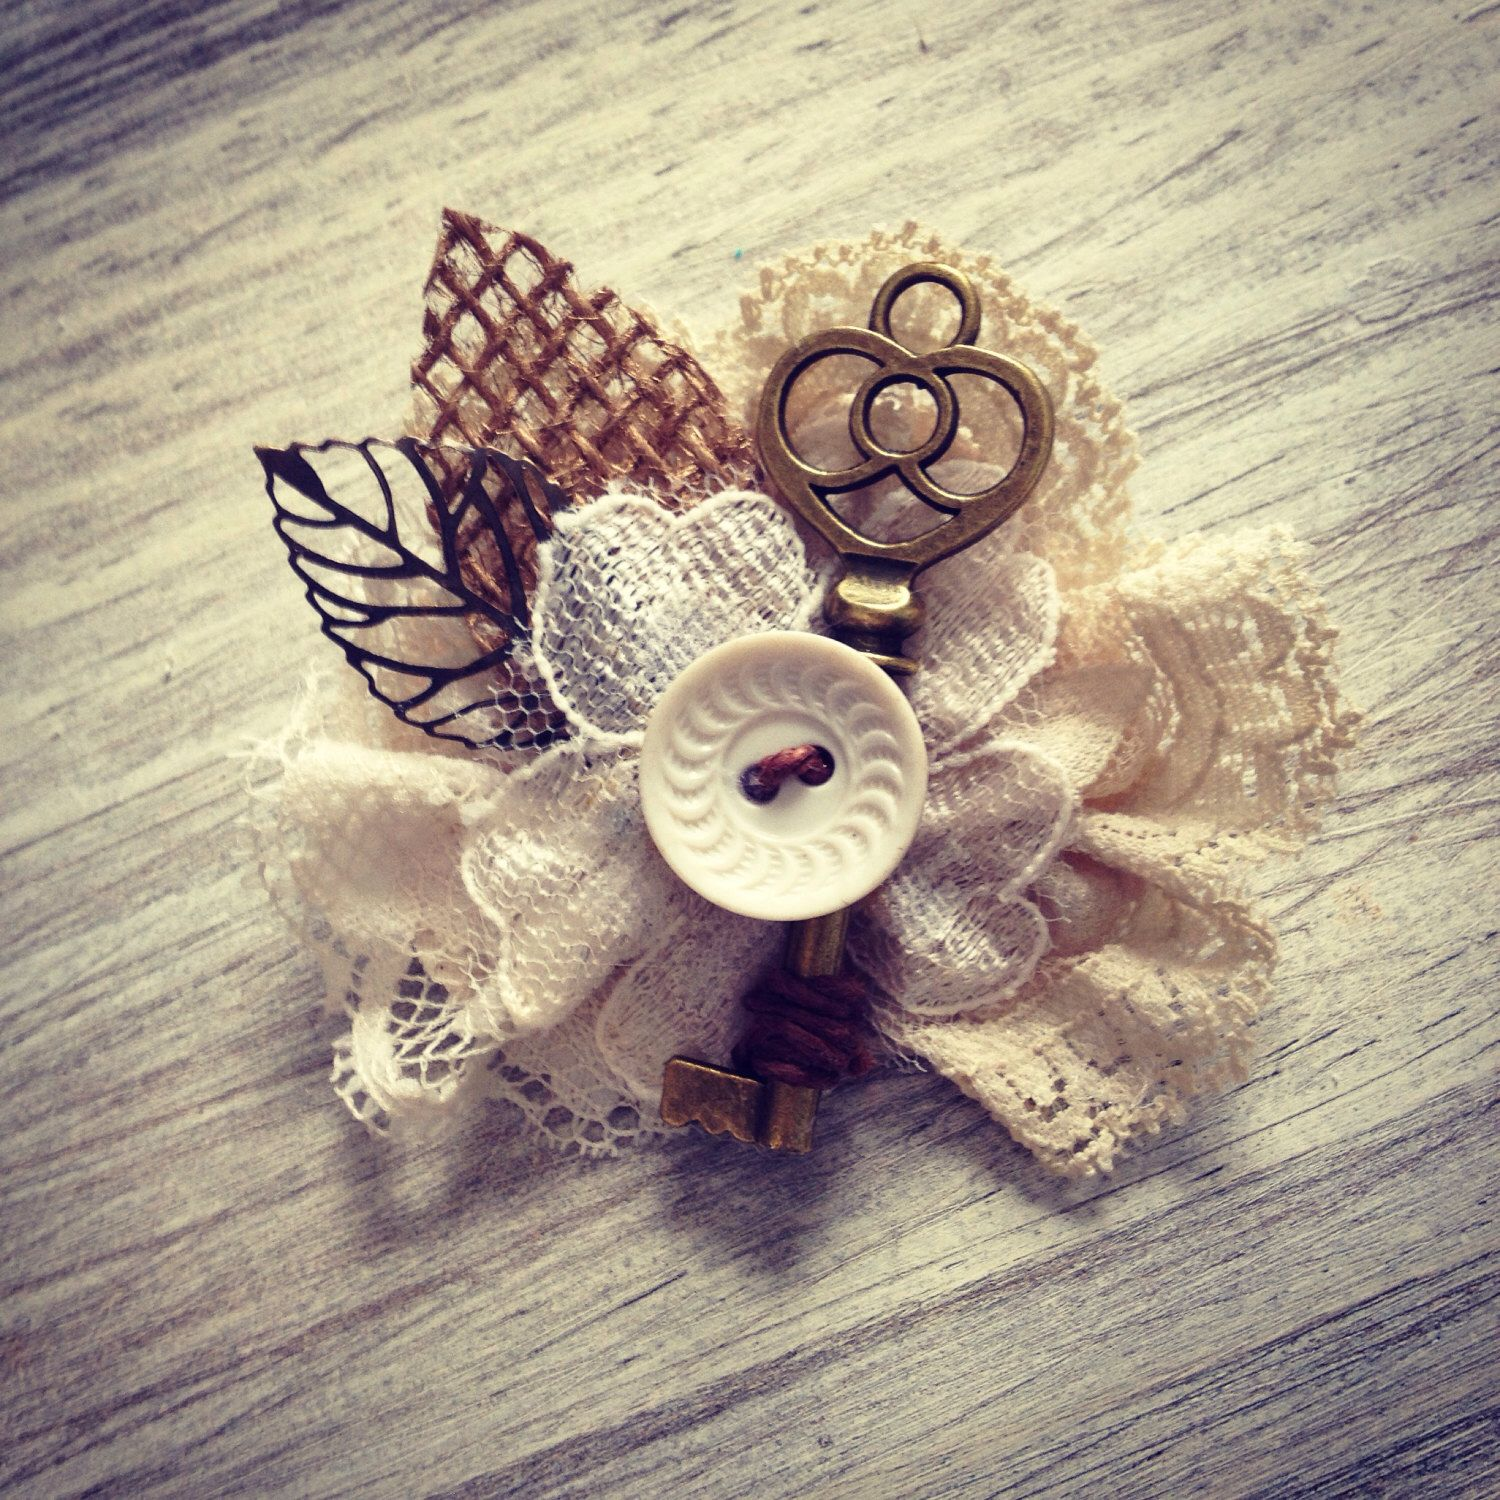 Vintage Key Boutonniere  Sunflower Wedding- Key, Burlap, Lace and Vintage Button Wedding Boutonnieres -Custom- by dustyLuck on Etsy https://www.etsy.com/listing/216160096/vintage-key-boutonniere-sunflower